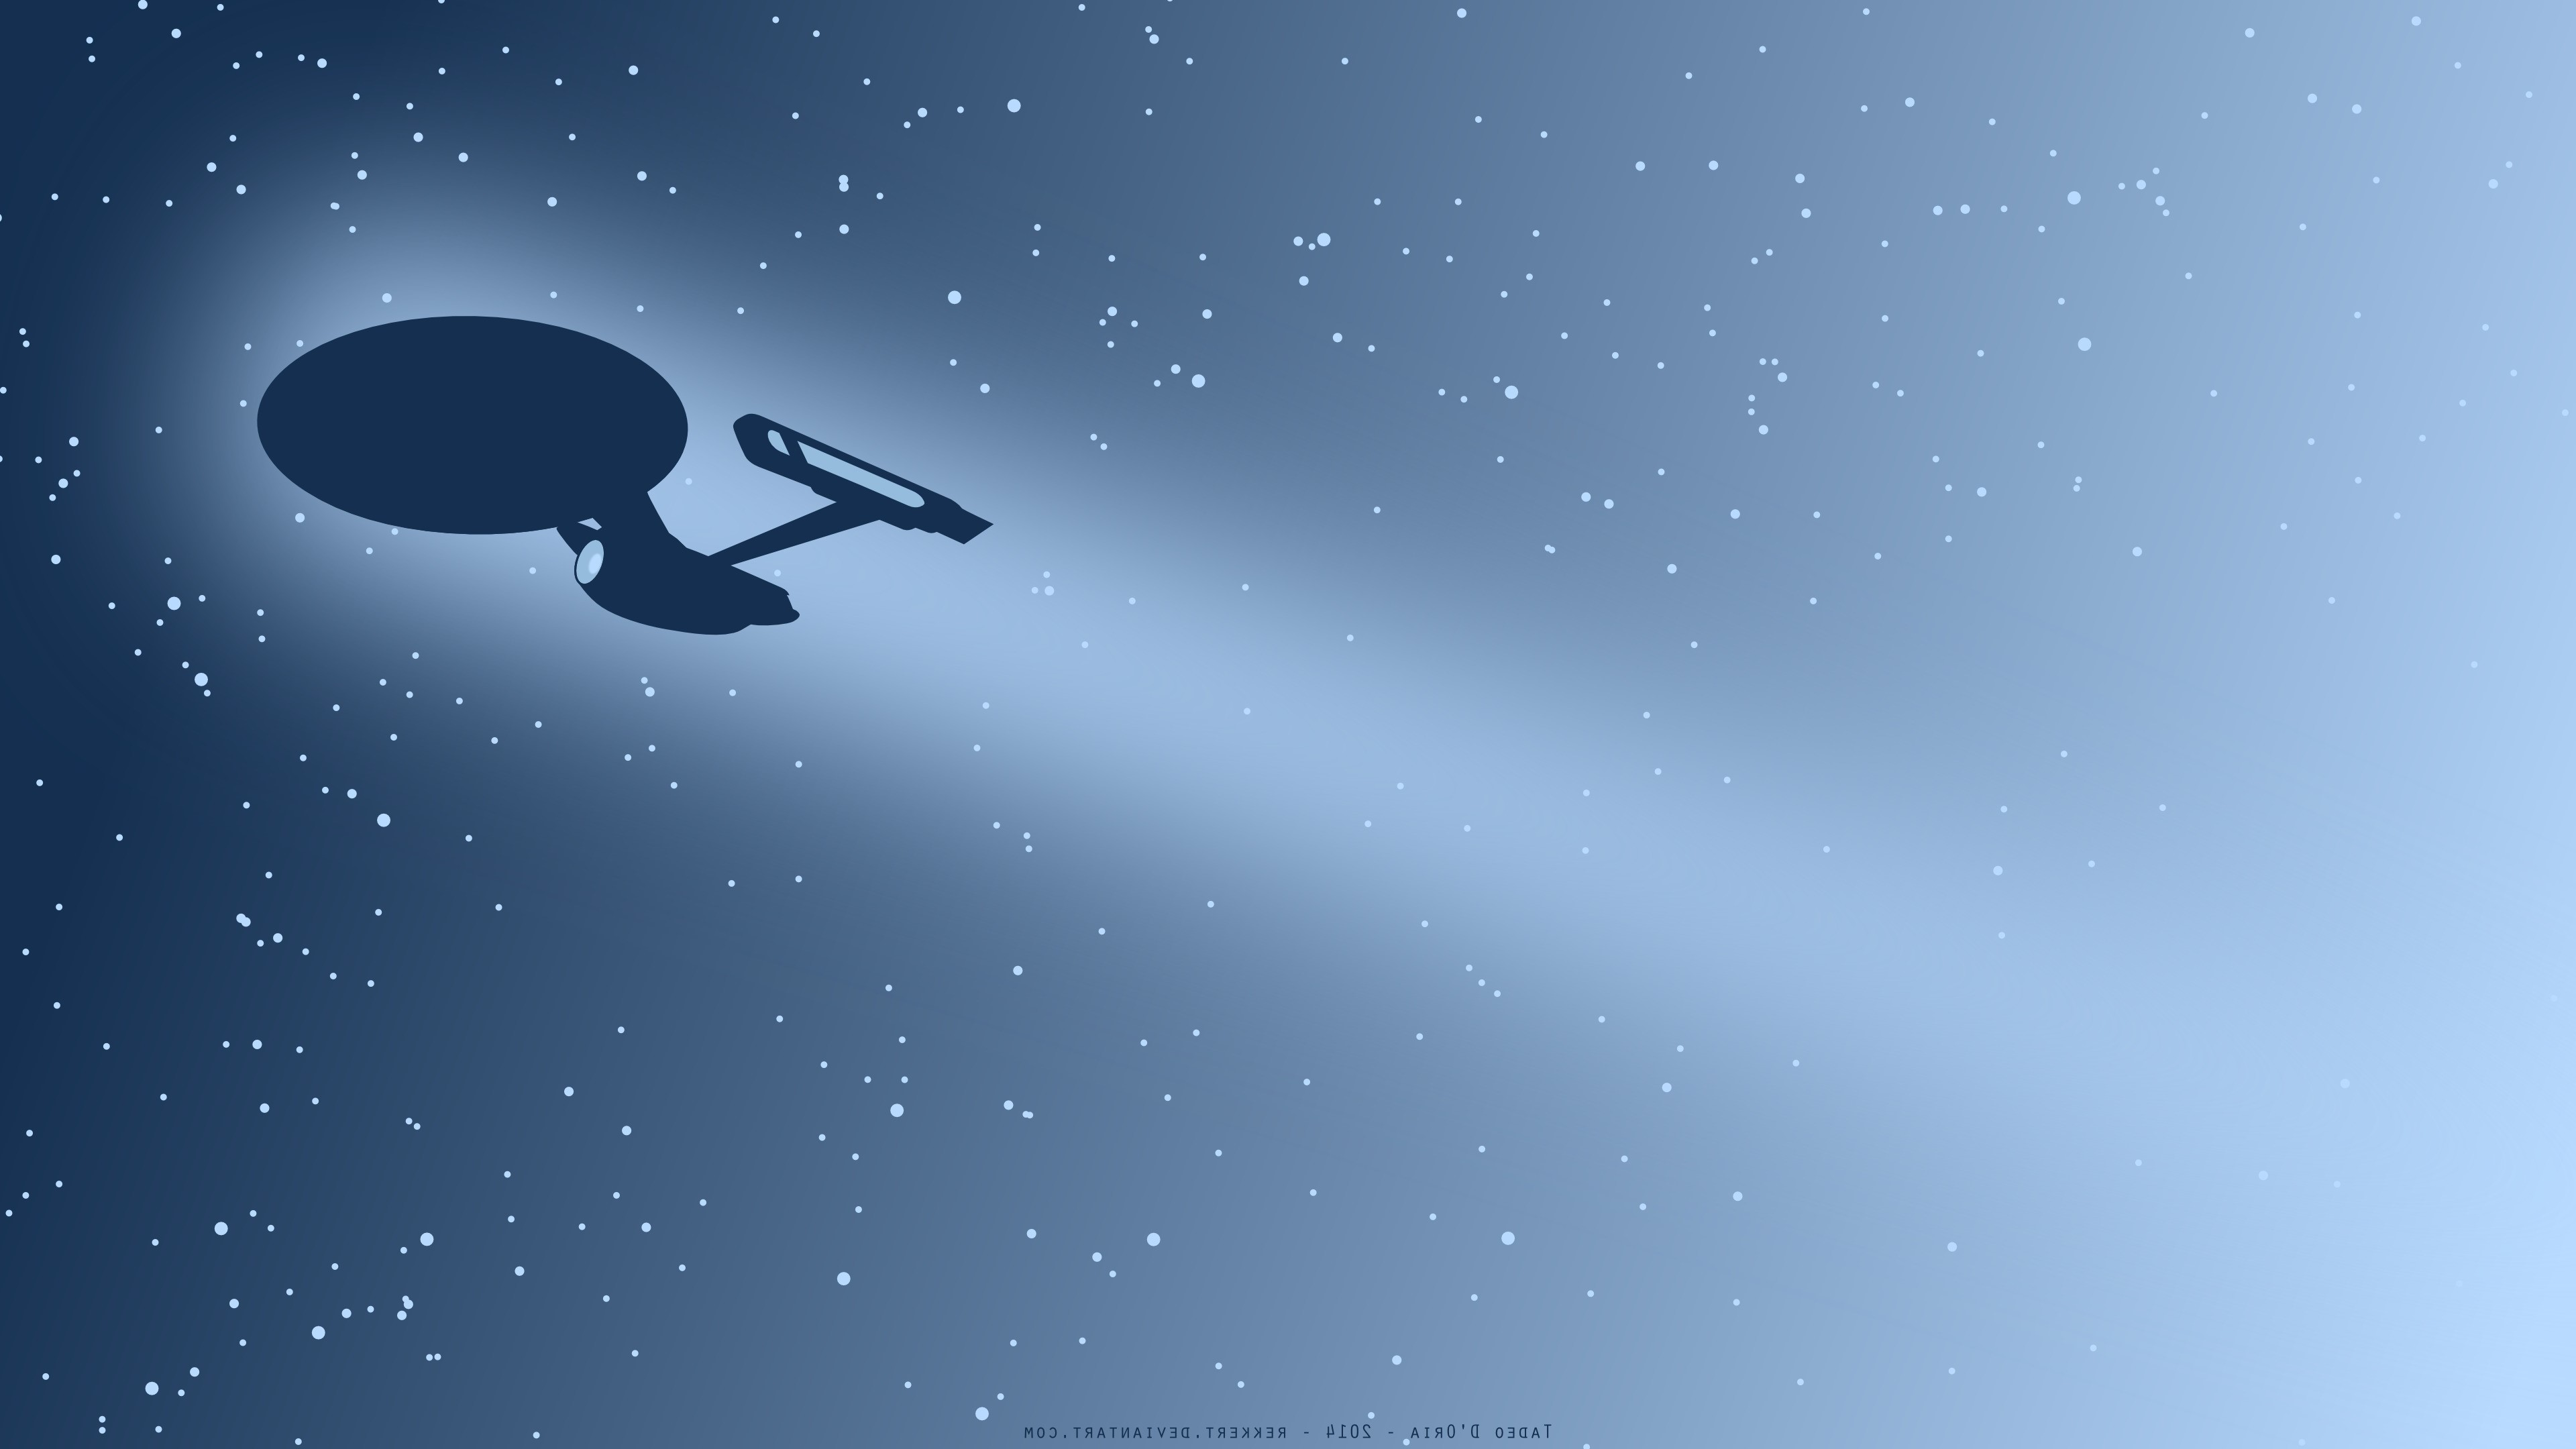 Star Trek Tng Wallpapers Posted By Sarah Tremblay